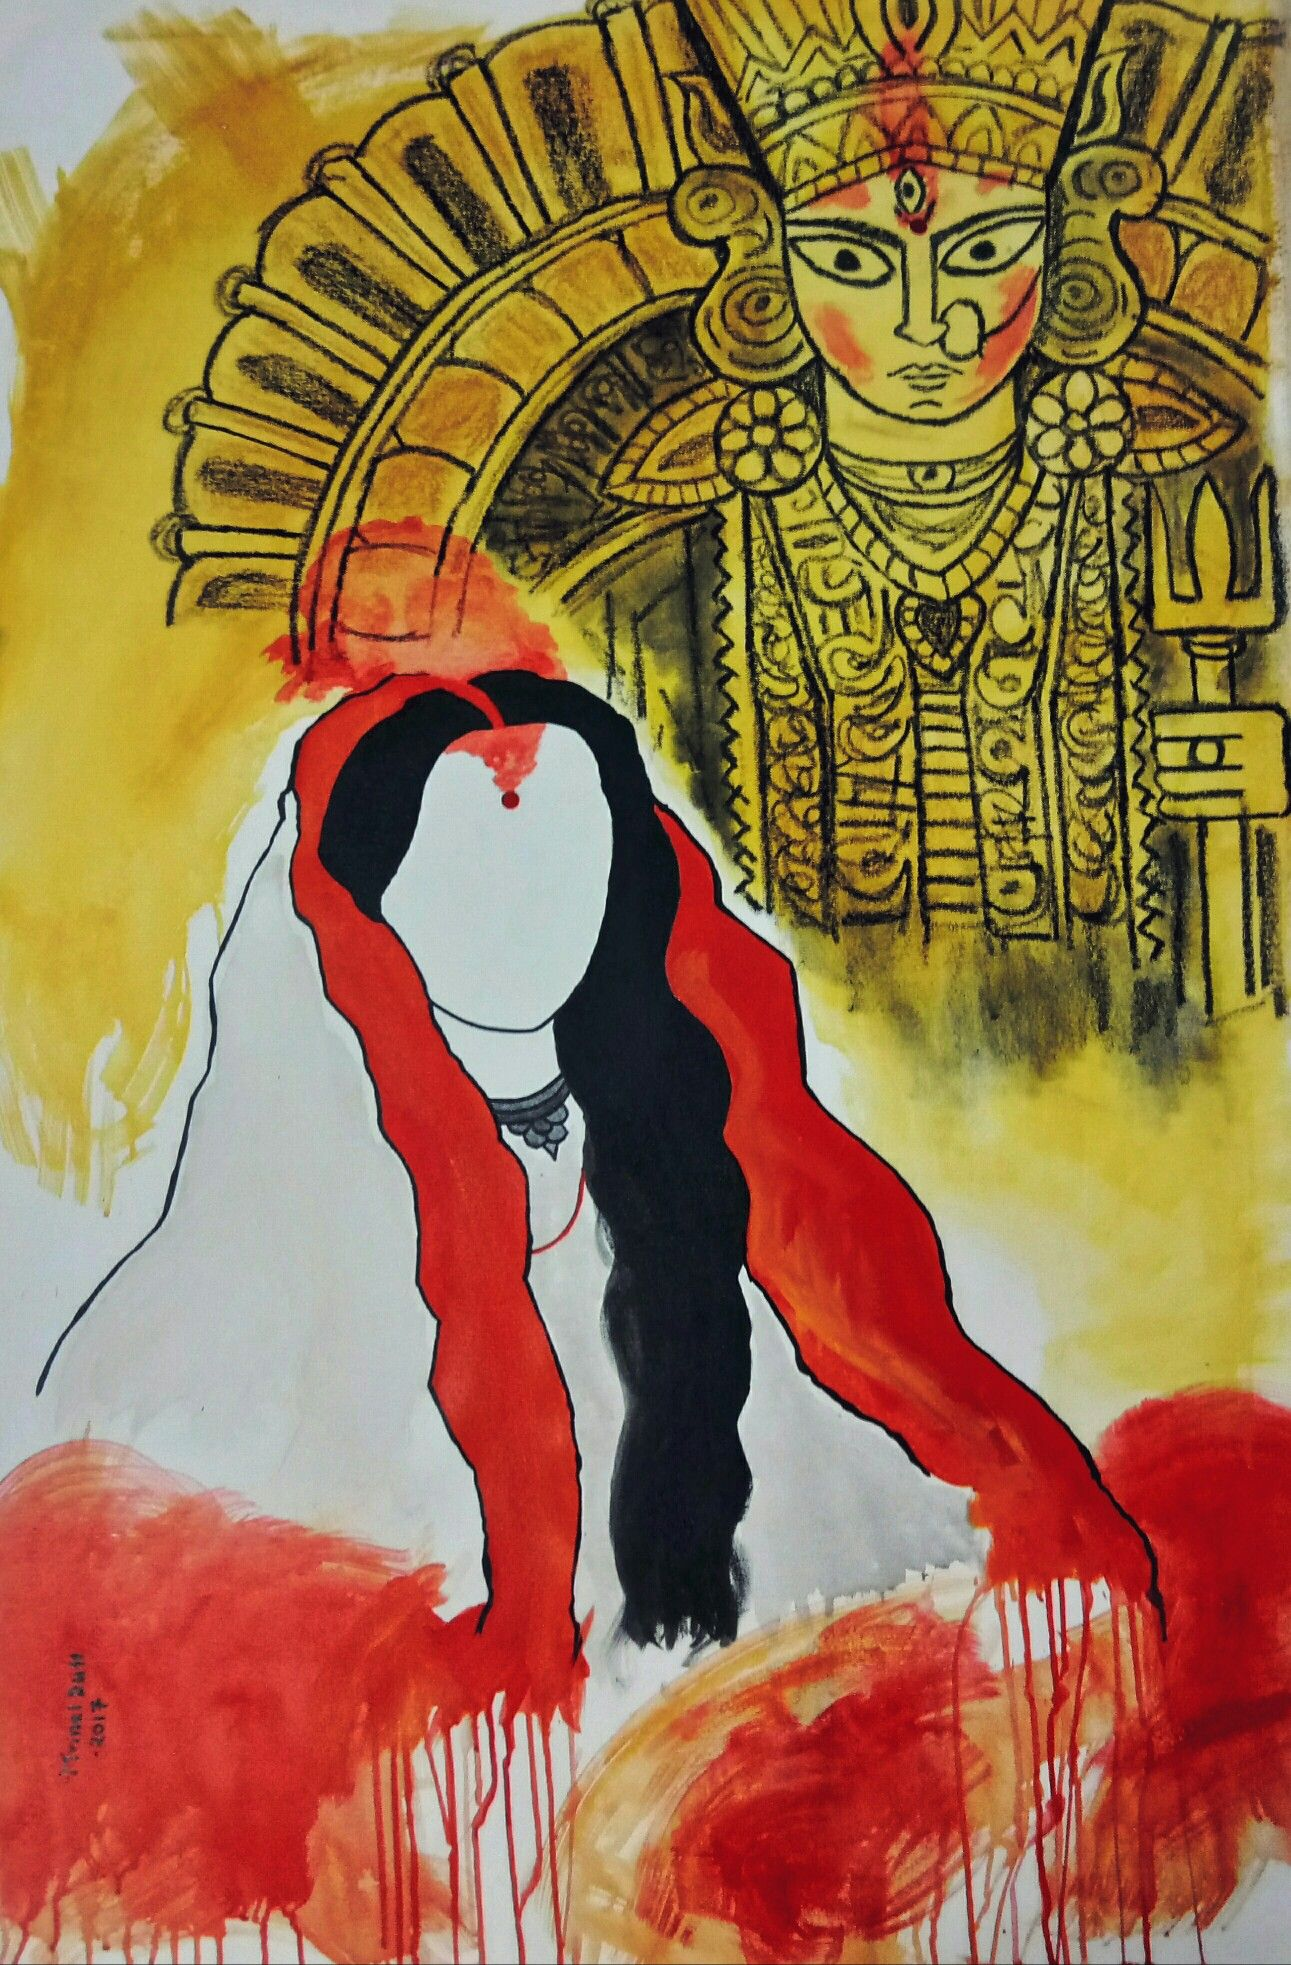 36b871e38 Maa Durga Art by Mrinal Dutt please do like my official page on art https: